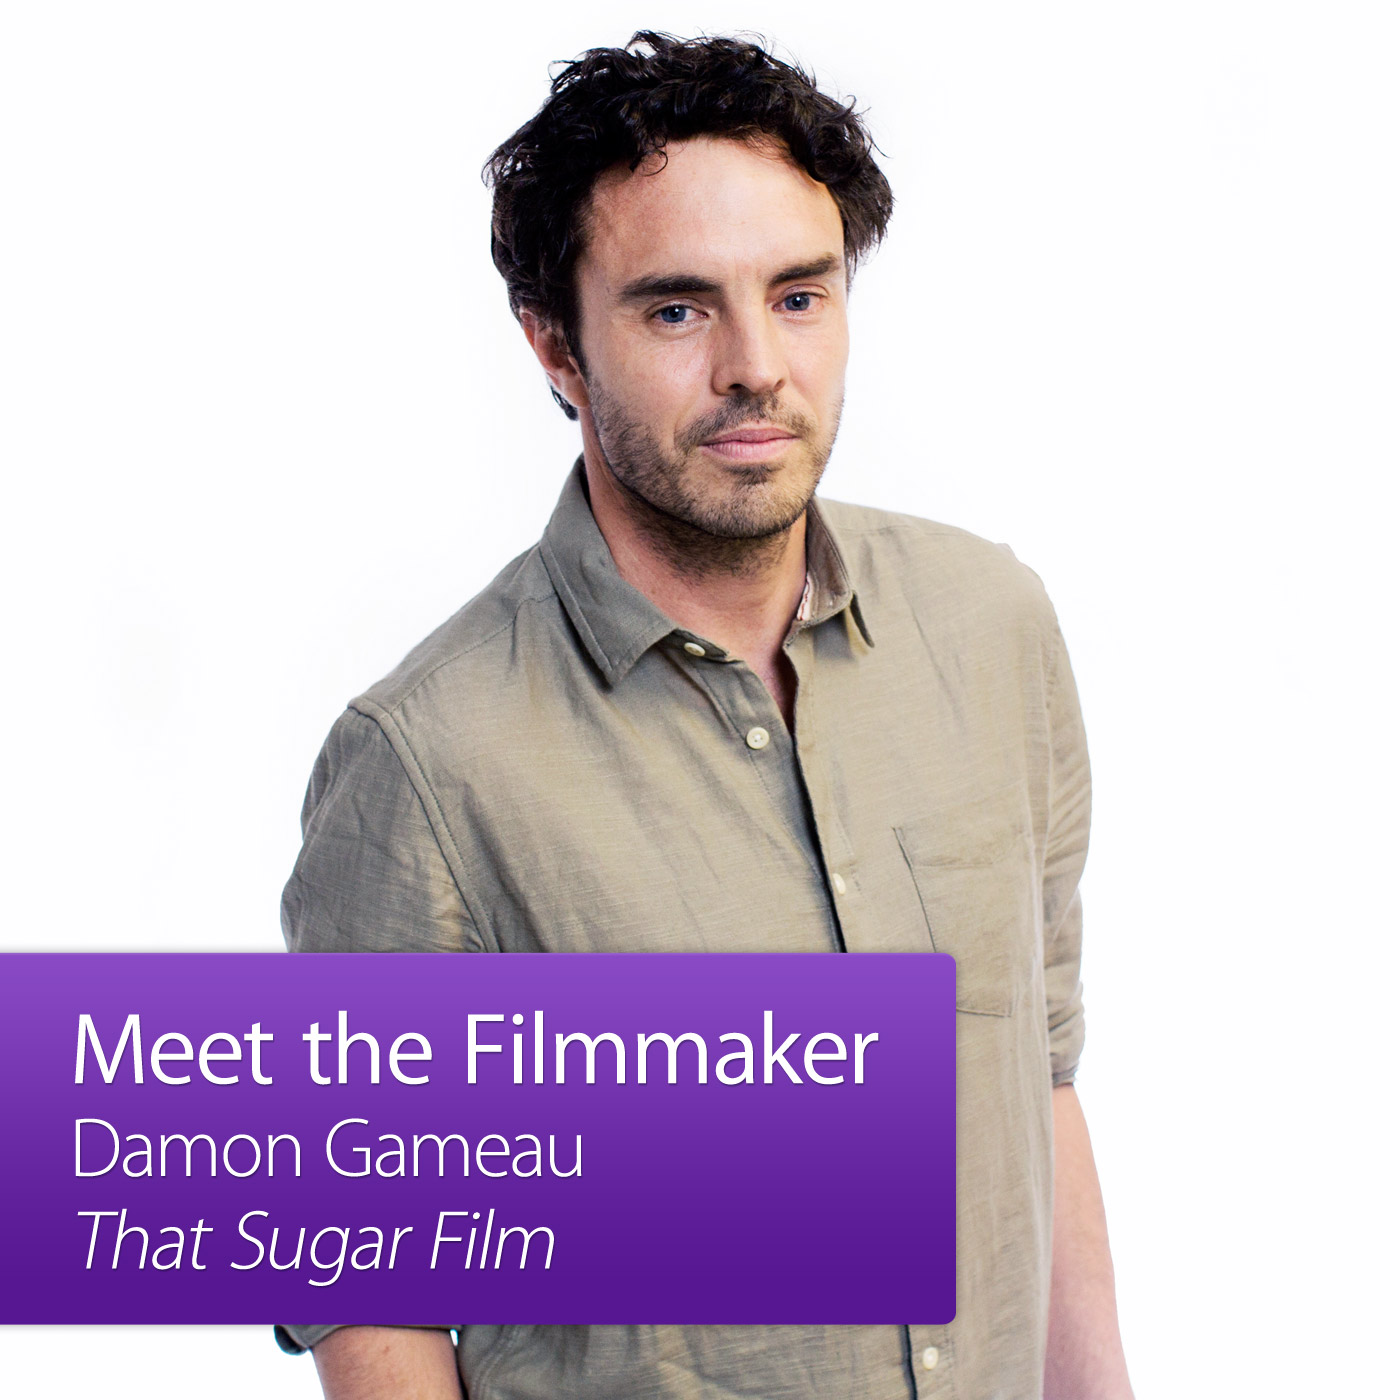 That Sugar Film: Meet the Filmmaker